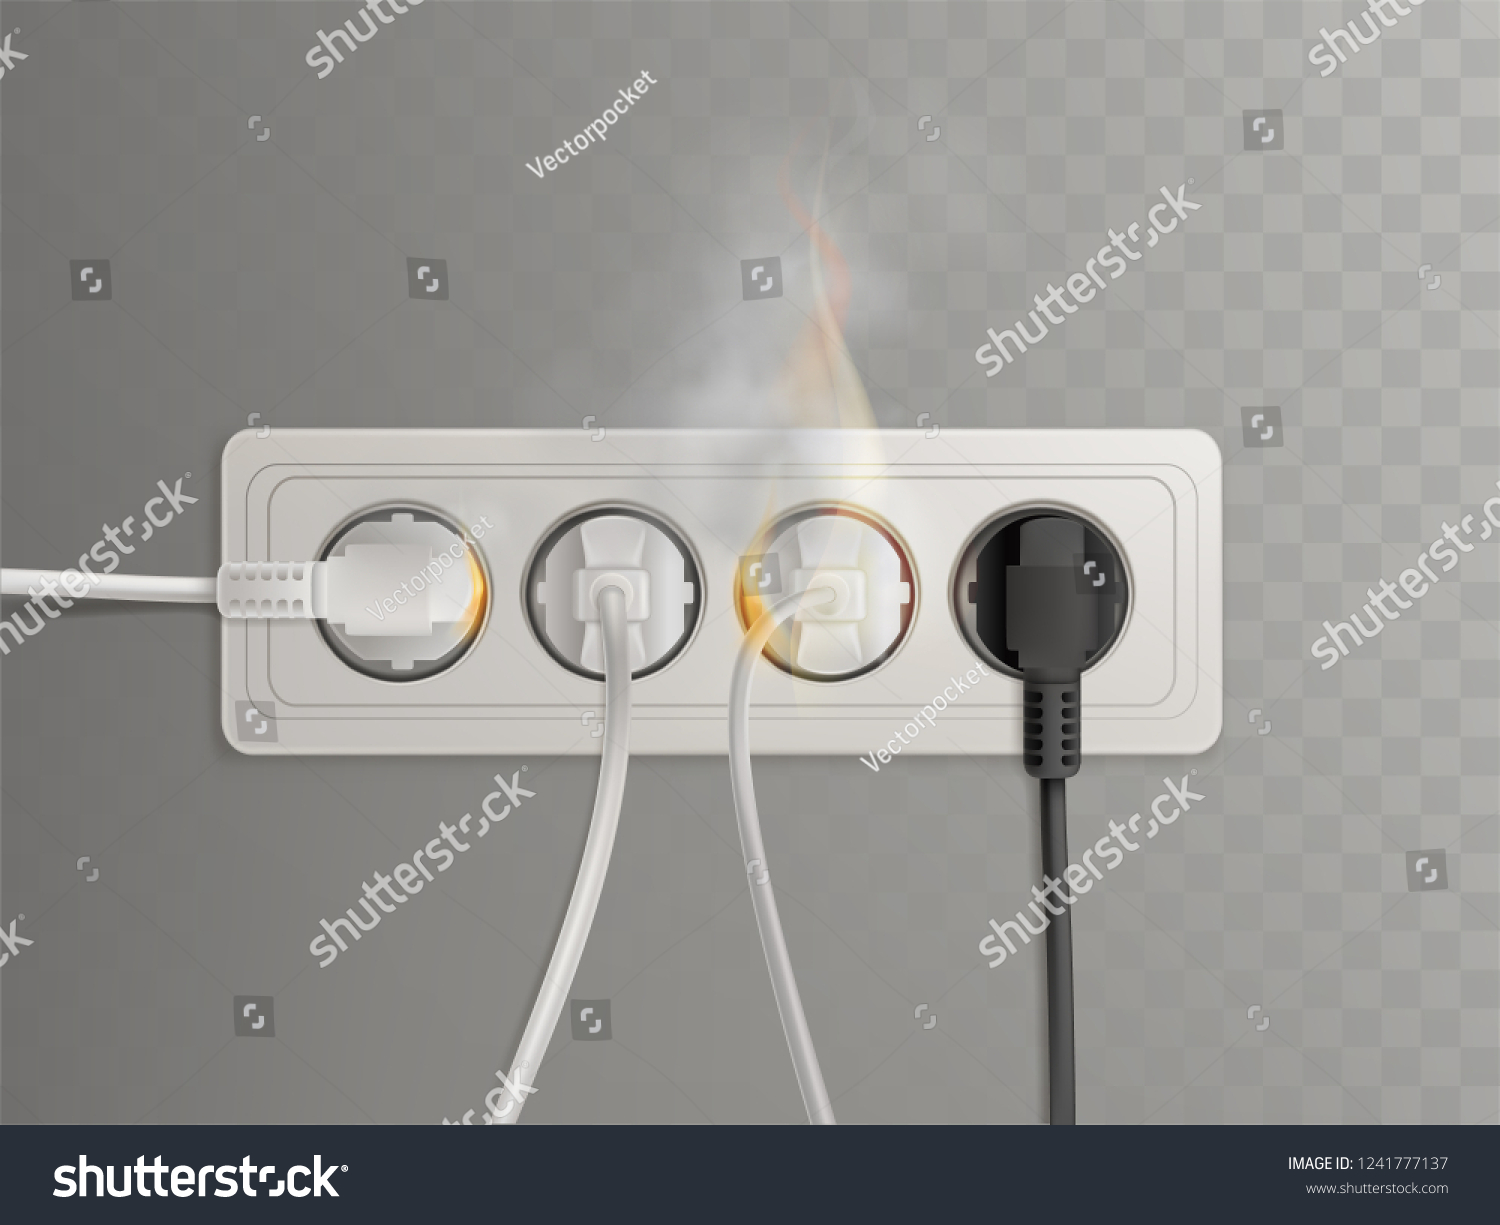 hight resolution of flaming power plugs in horizontal electrical socket realistic vector illustration isolated on transparent background short